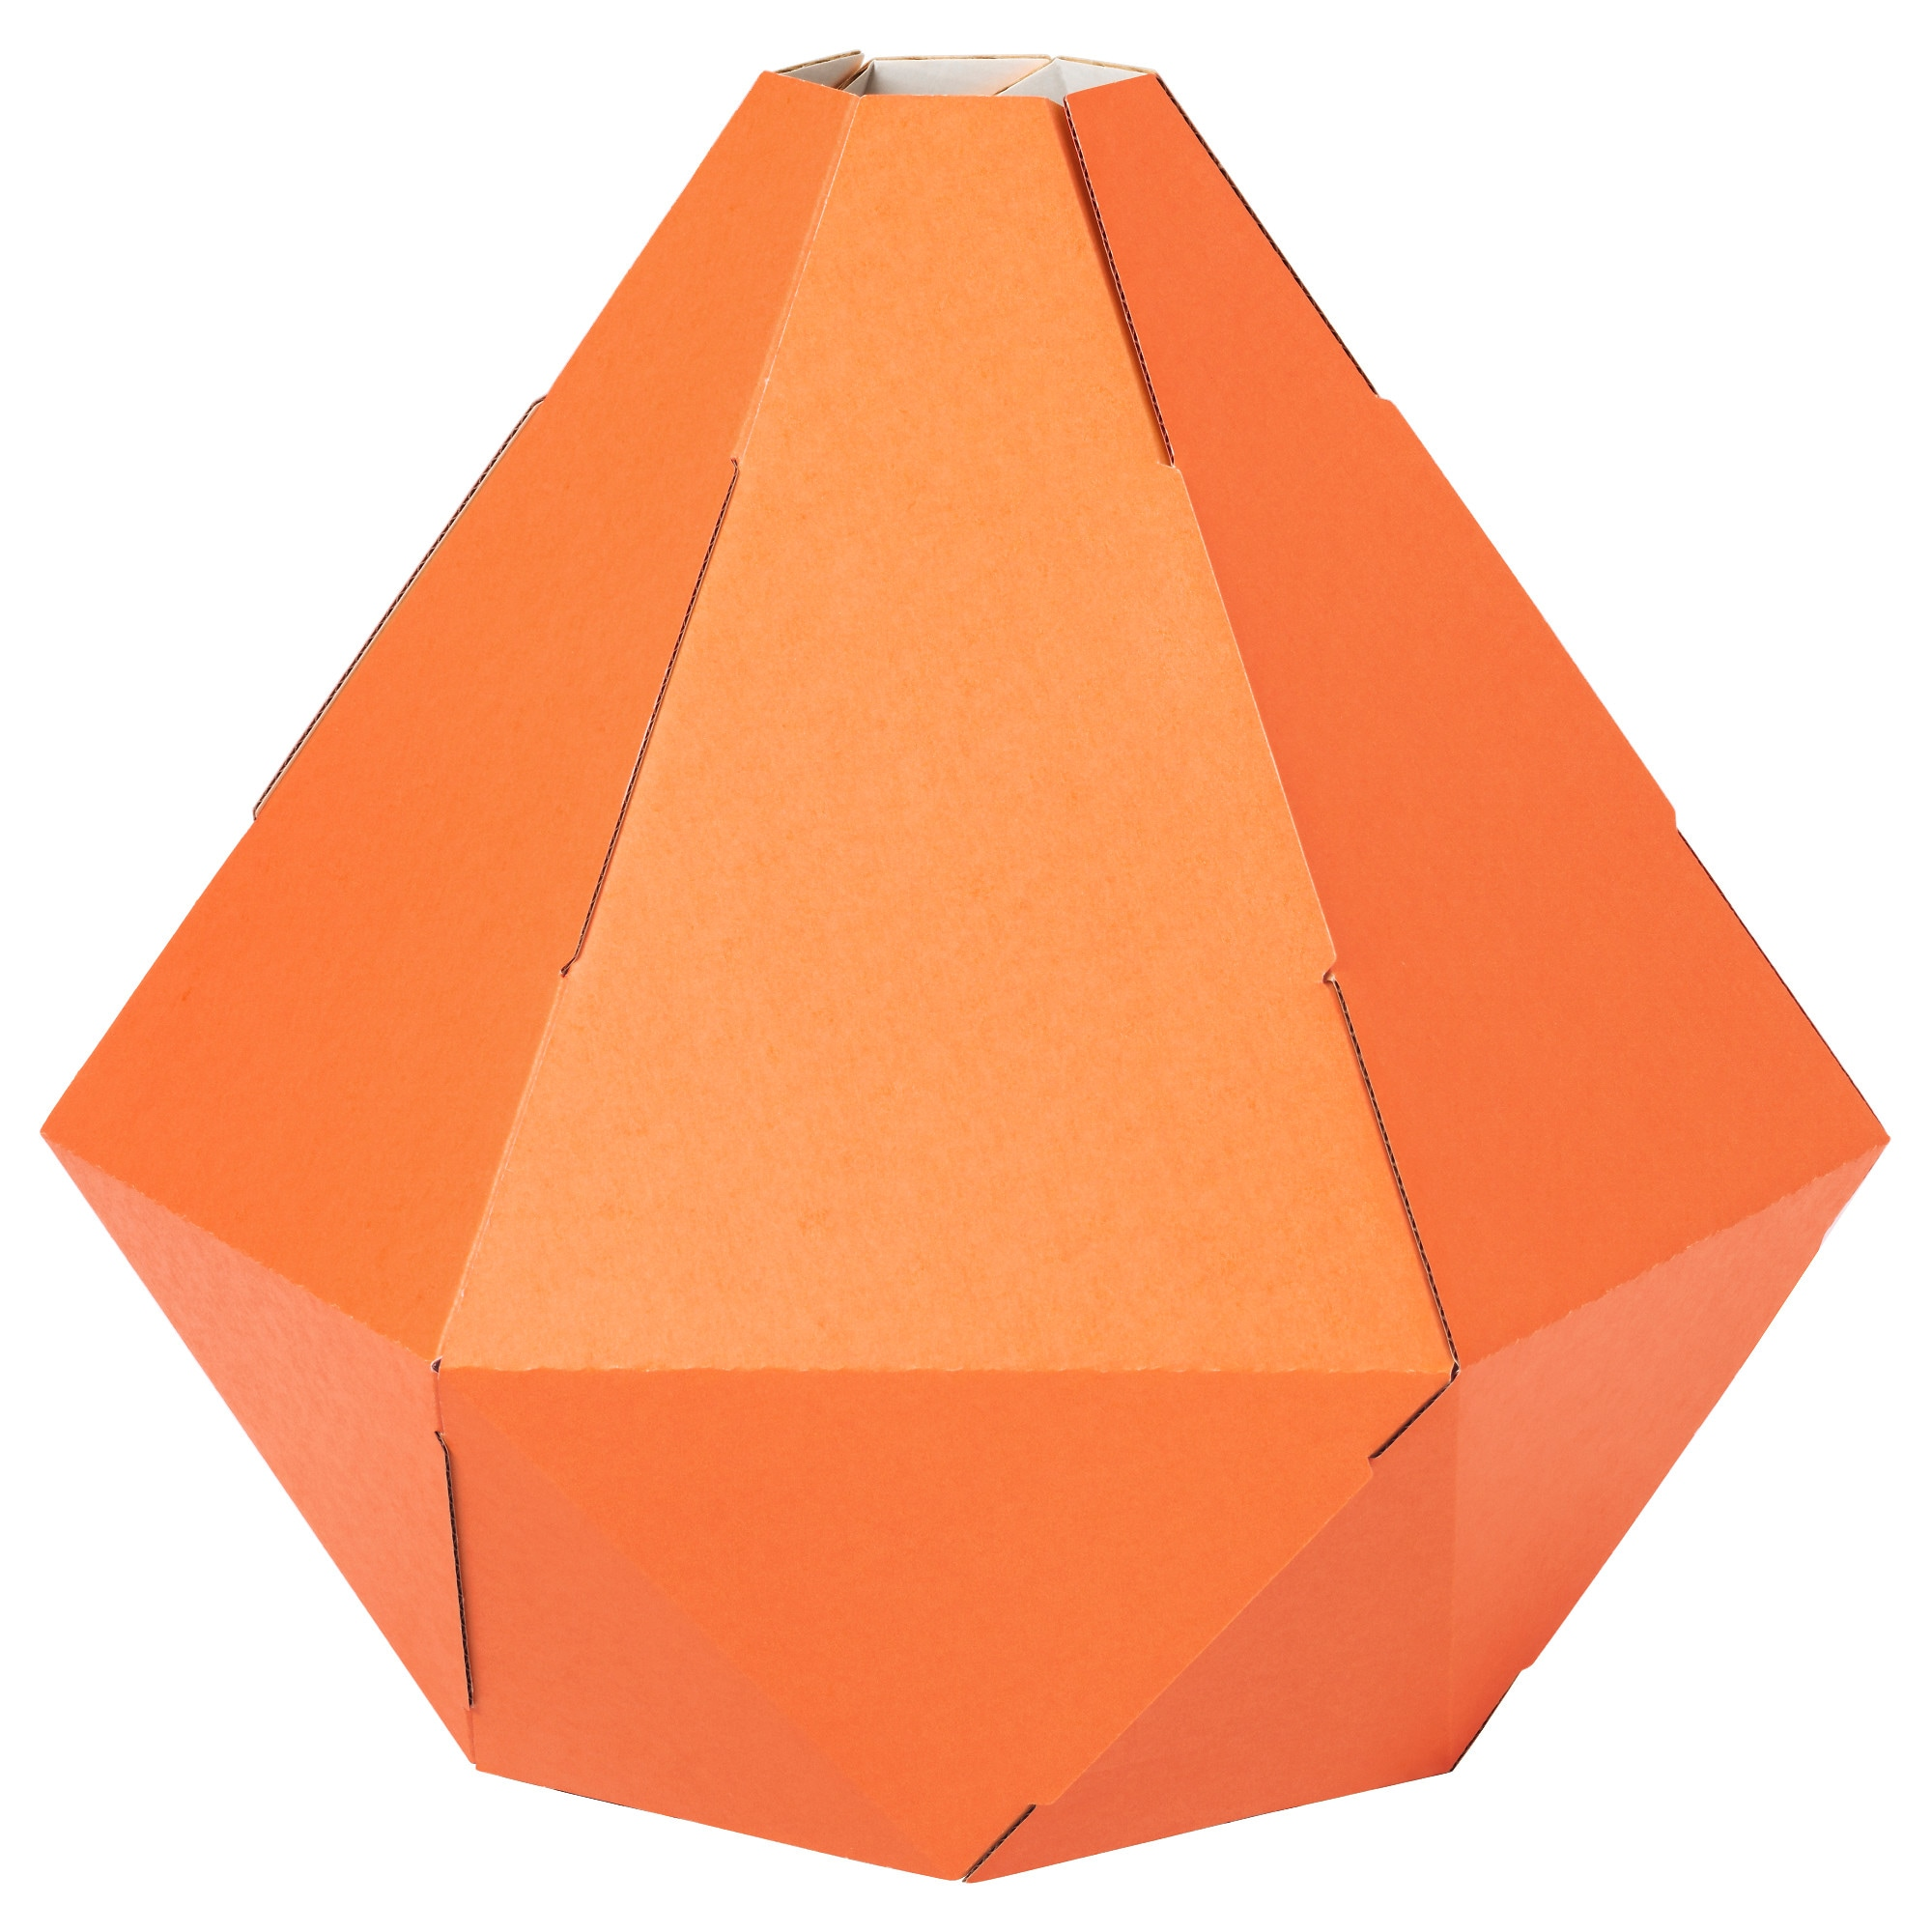 joxtorp pendant lamp shade ikea - Suspension Origami Ikea